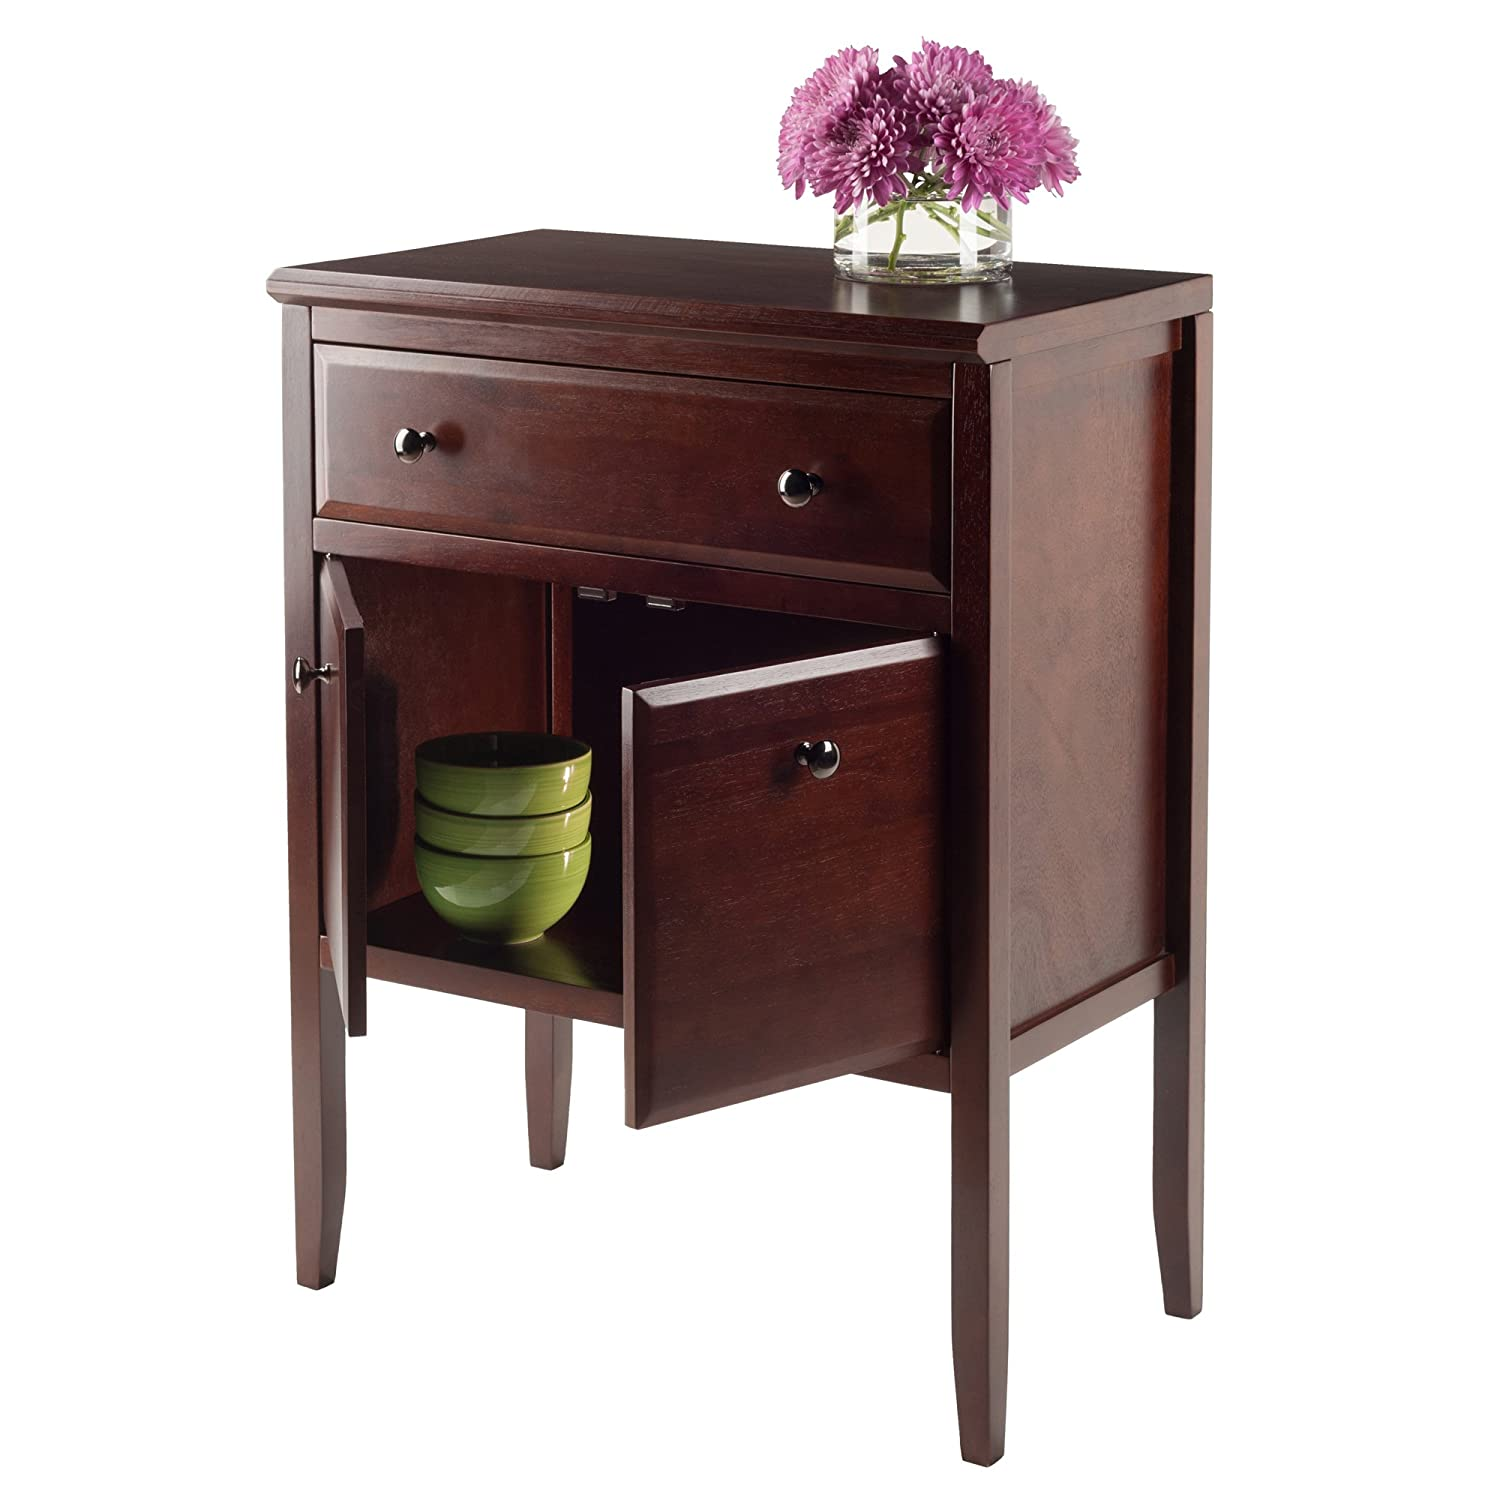 Amazon Winsome Wood Orleans Modular Buffet with Drawer